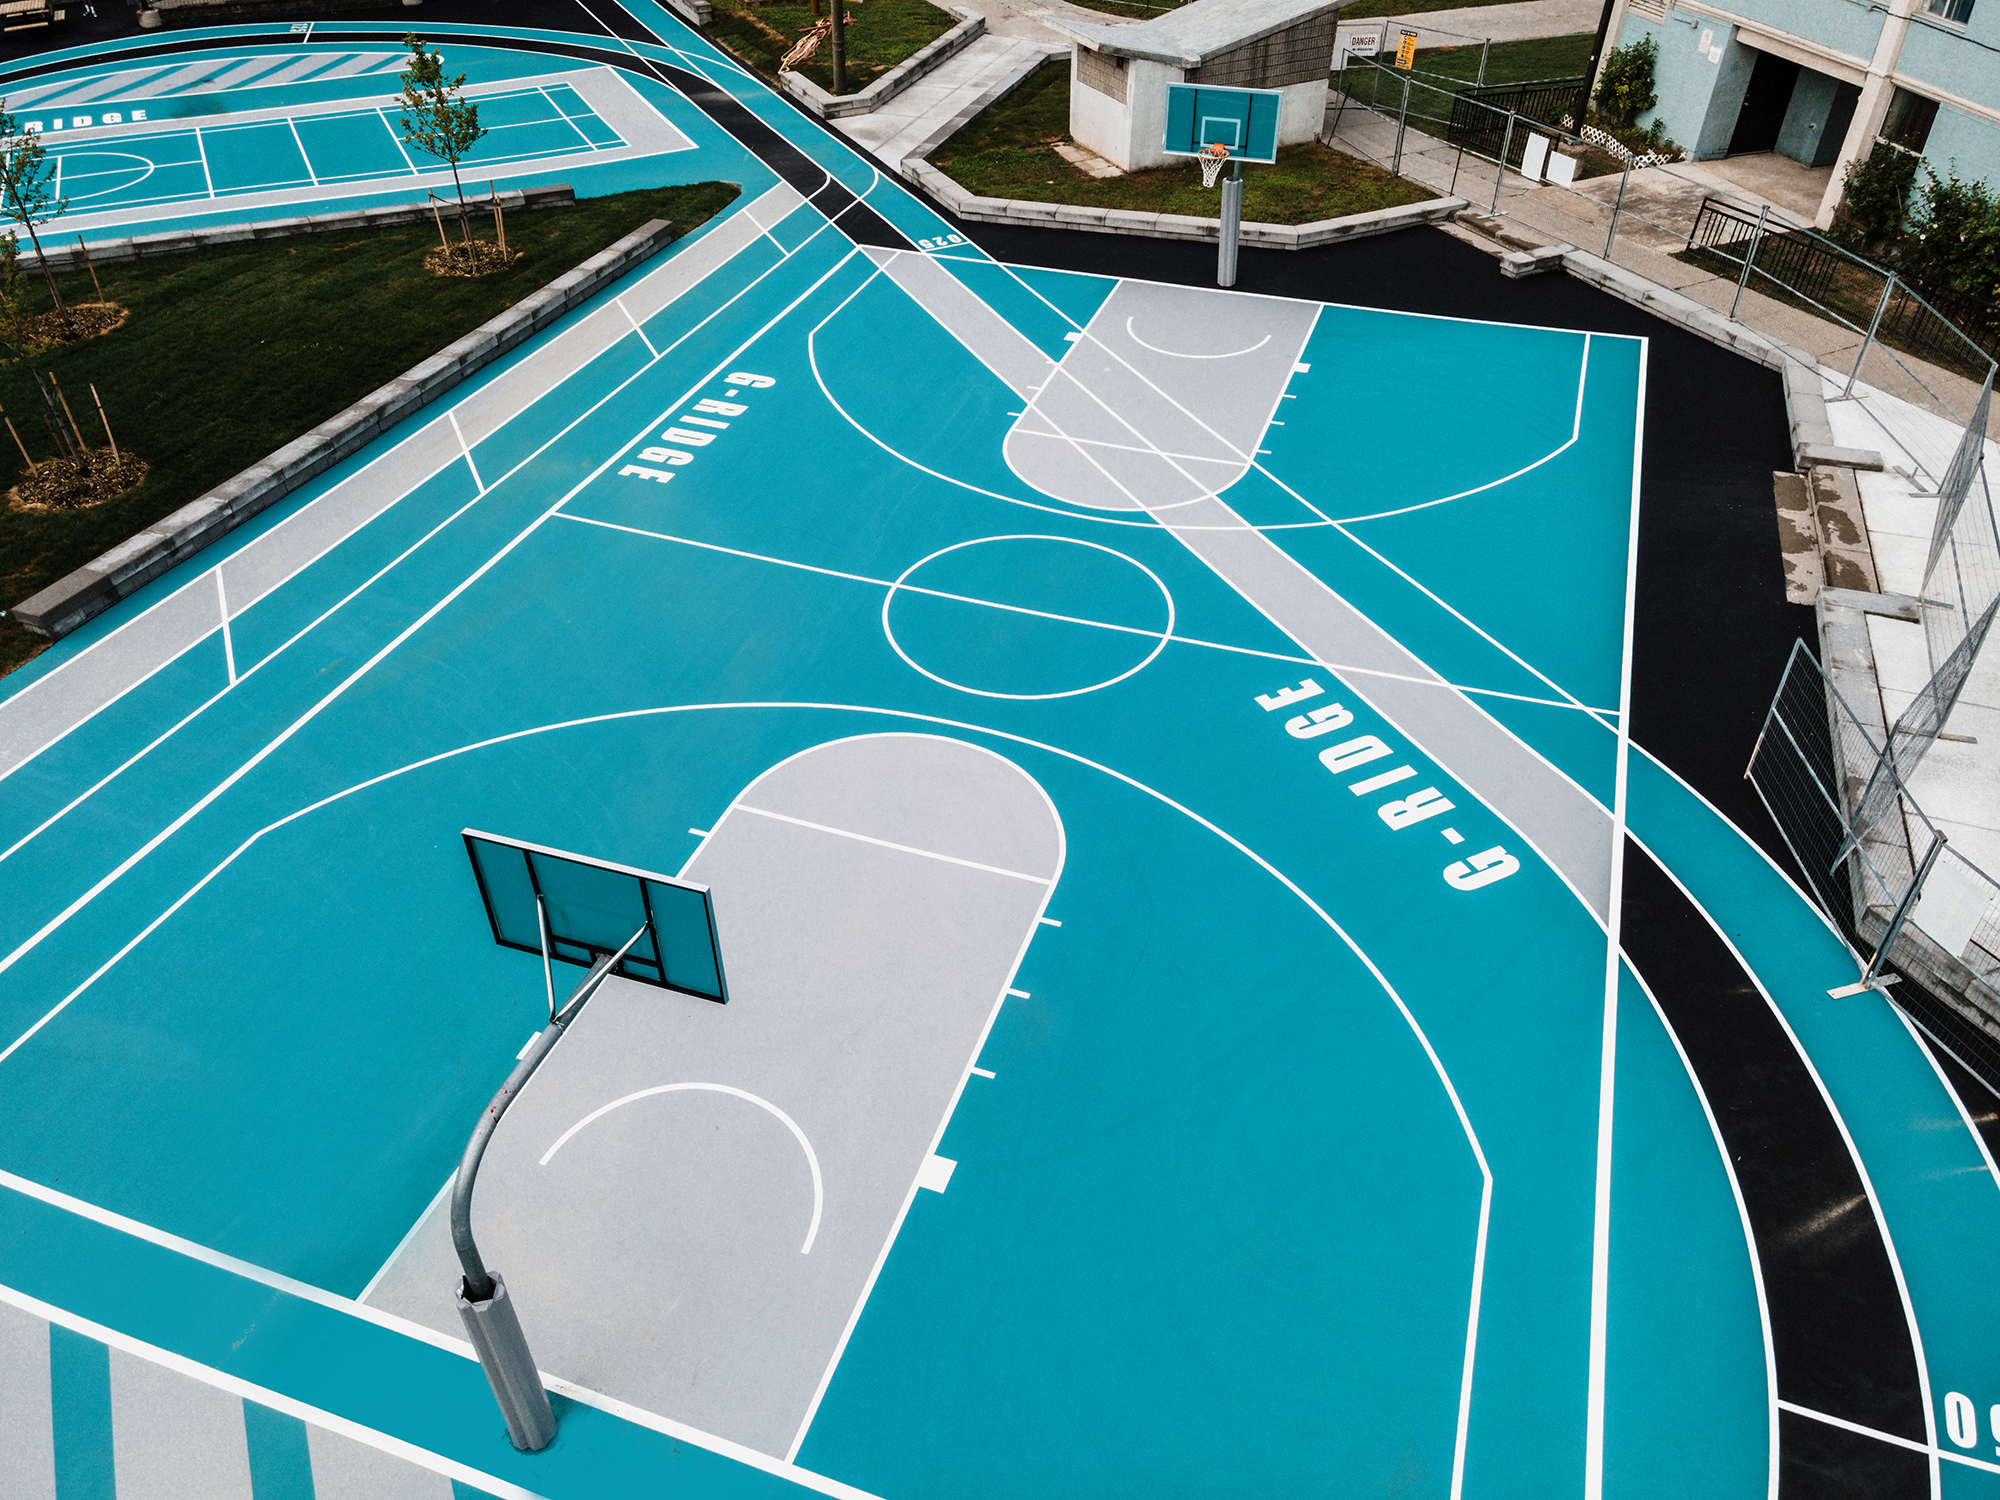 Drone view of the Gordonridge basketball court